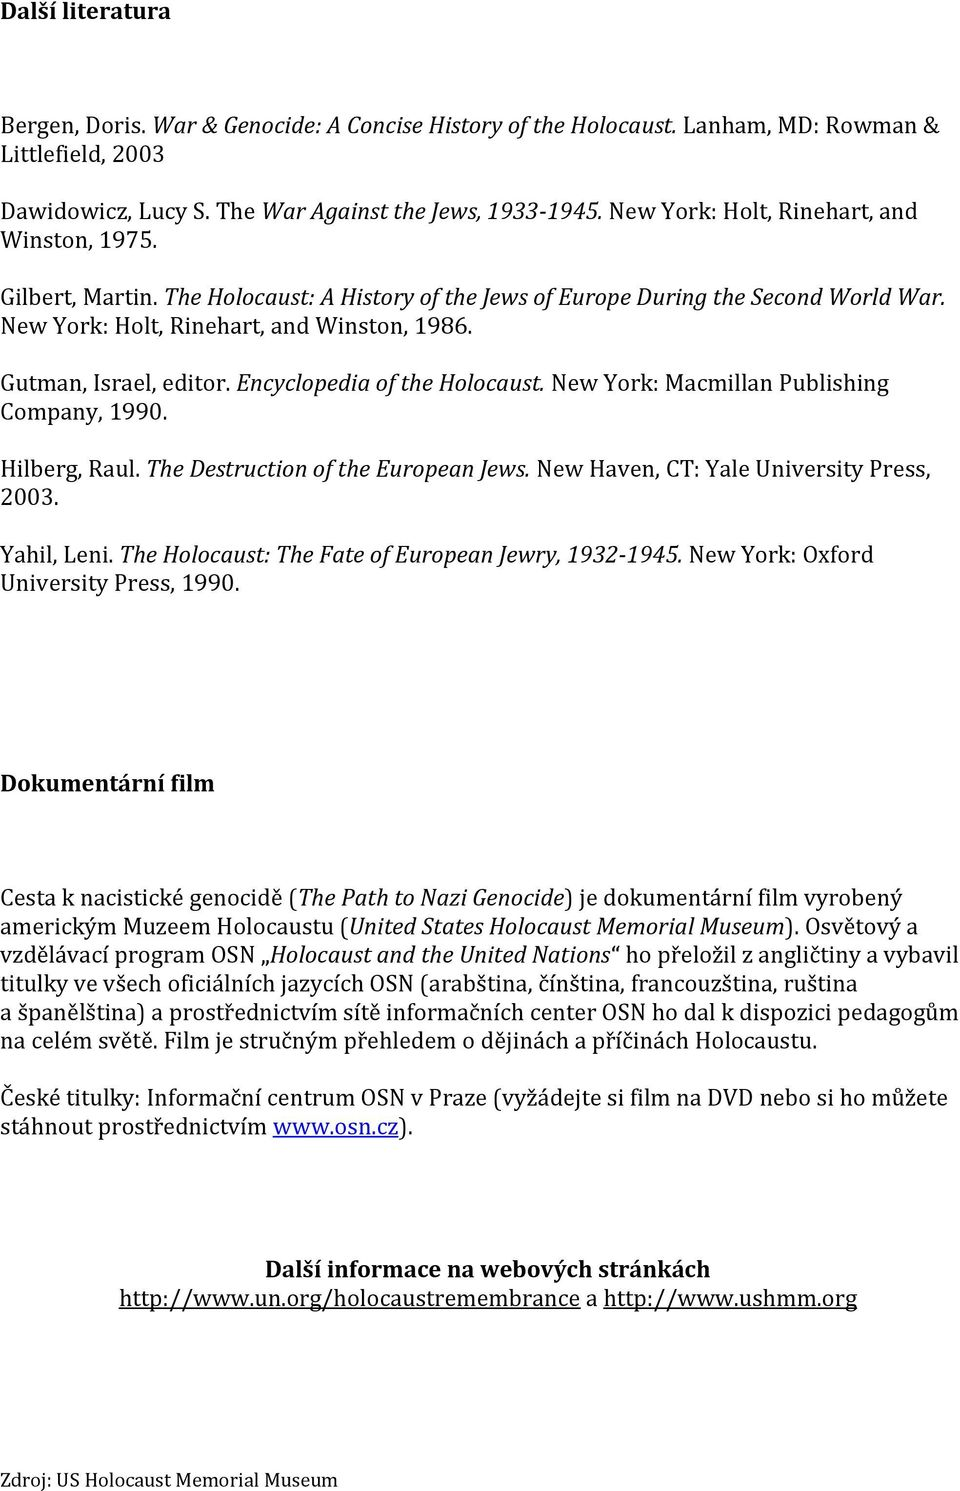 Gutman, Israel, editor. Encyclopedia of the Holocaust. New York: Macmillan Publishing Company, 1990. Hilberg, Raul. The Destruction of the European Jews. New Haven, CT: Yale University Press, 2003.